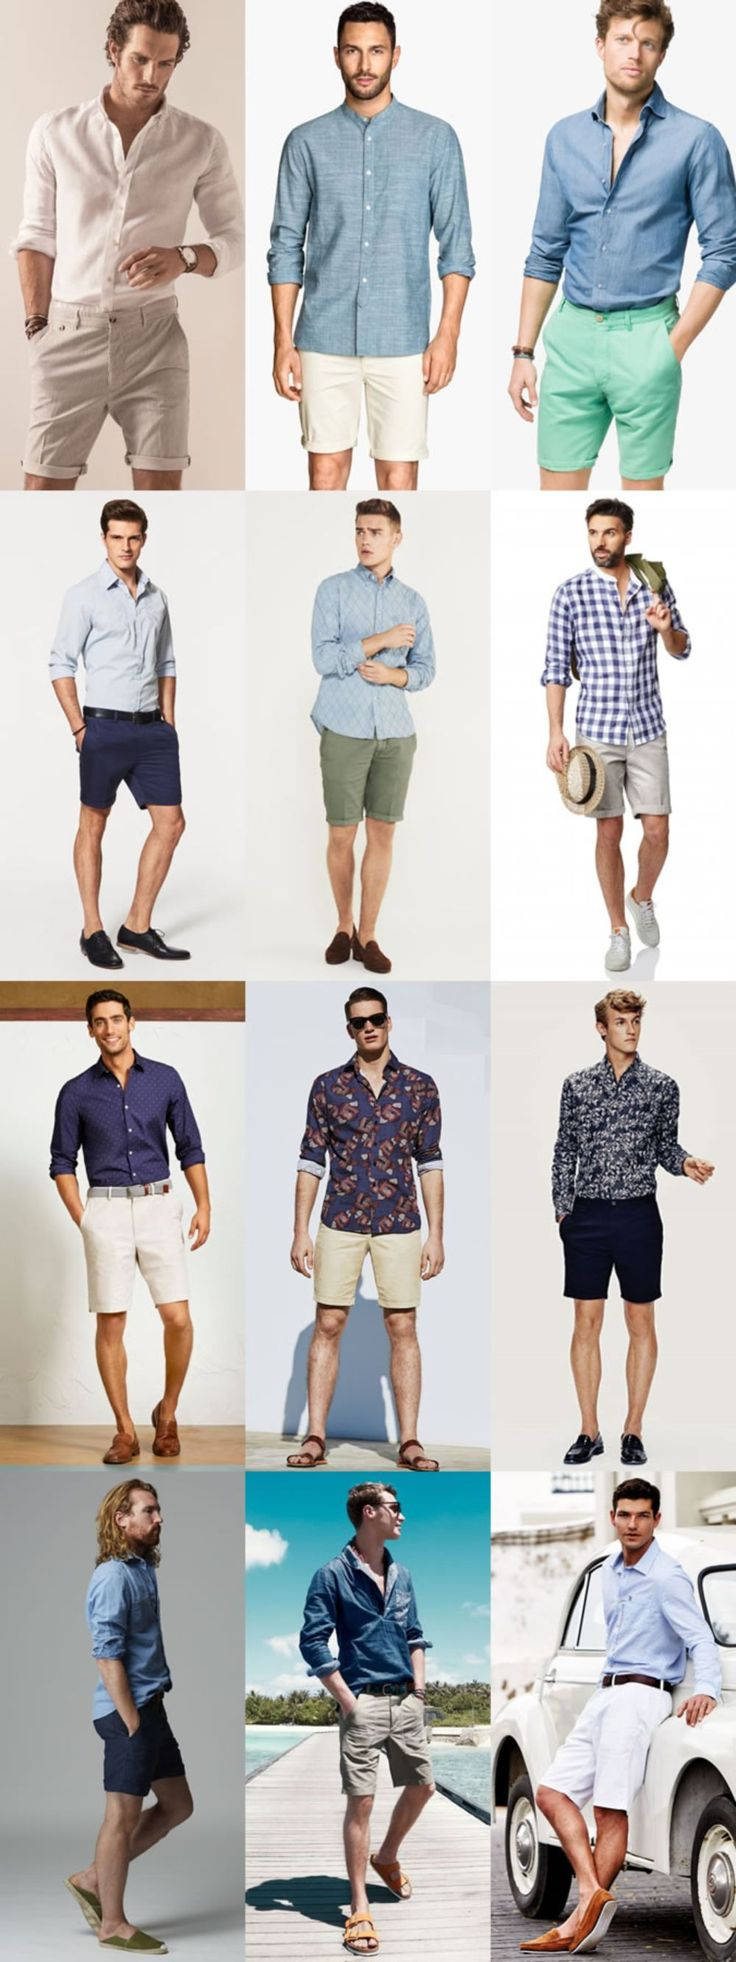 Gorgeous 23 Inspiring Men's Summer Outfits to Copy from https://www.fashionetter.com/2017/05/26/23-inspiring-mens-summer-outfits-copy/